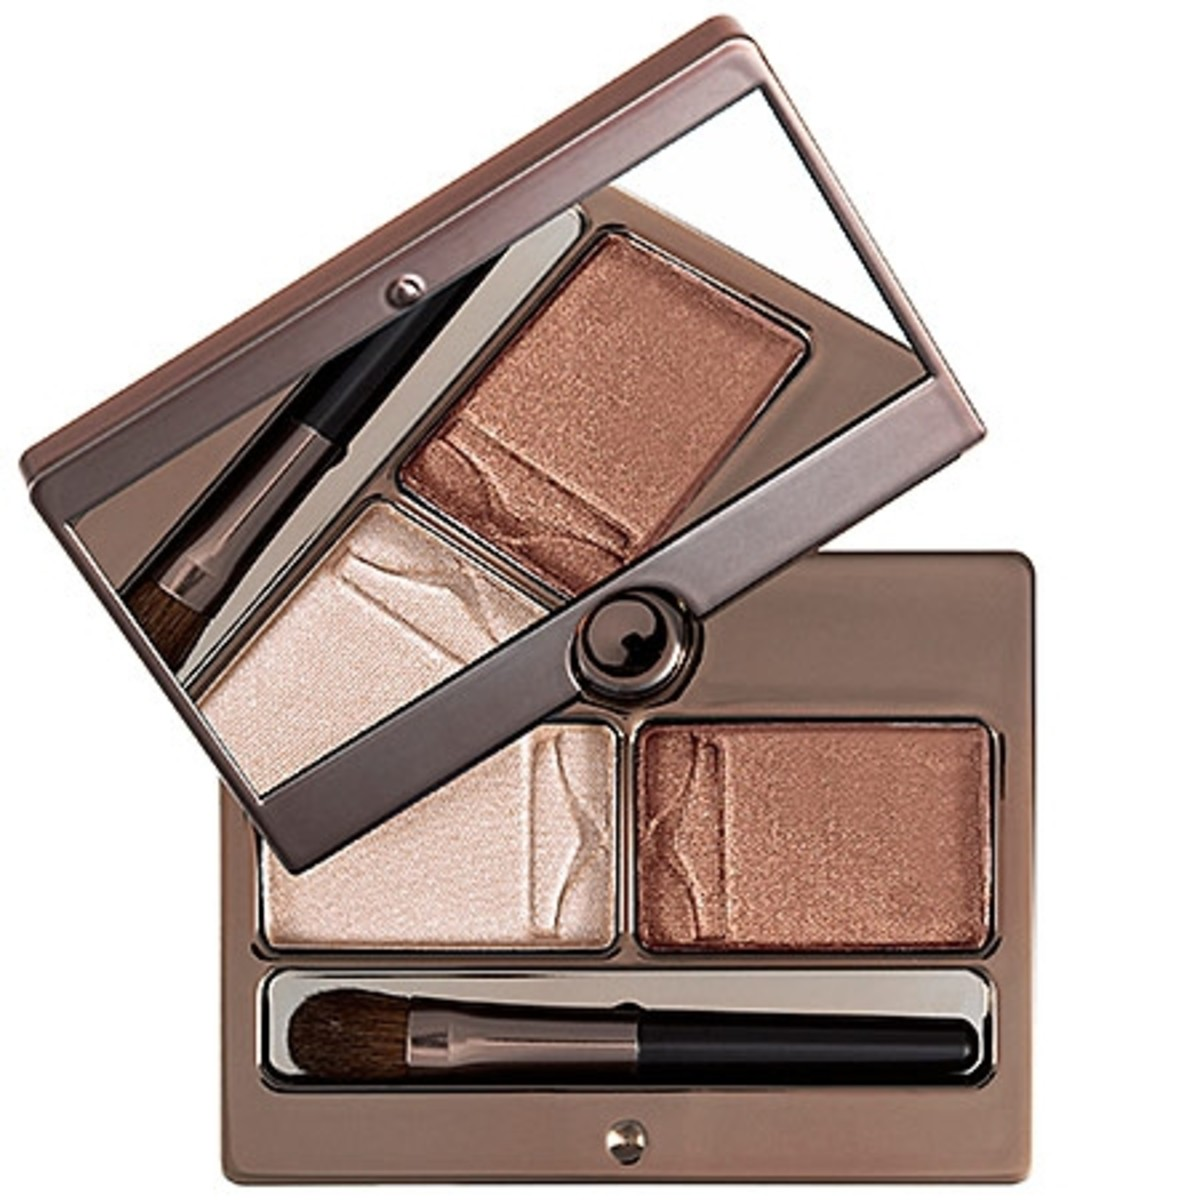 Hourglass Visionaire Eye Shadow Duo in Gypsy